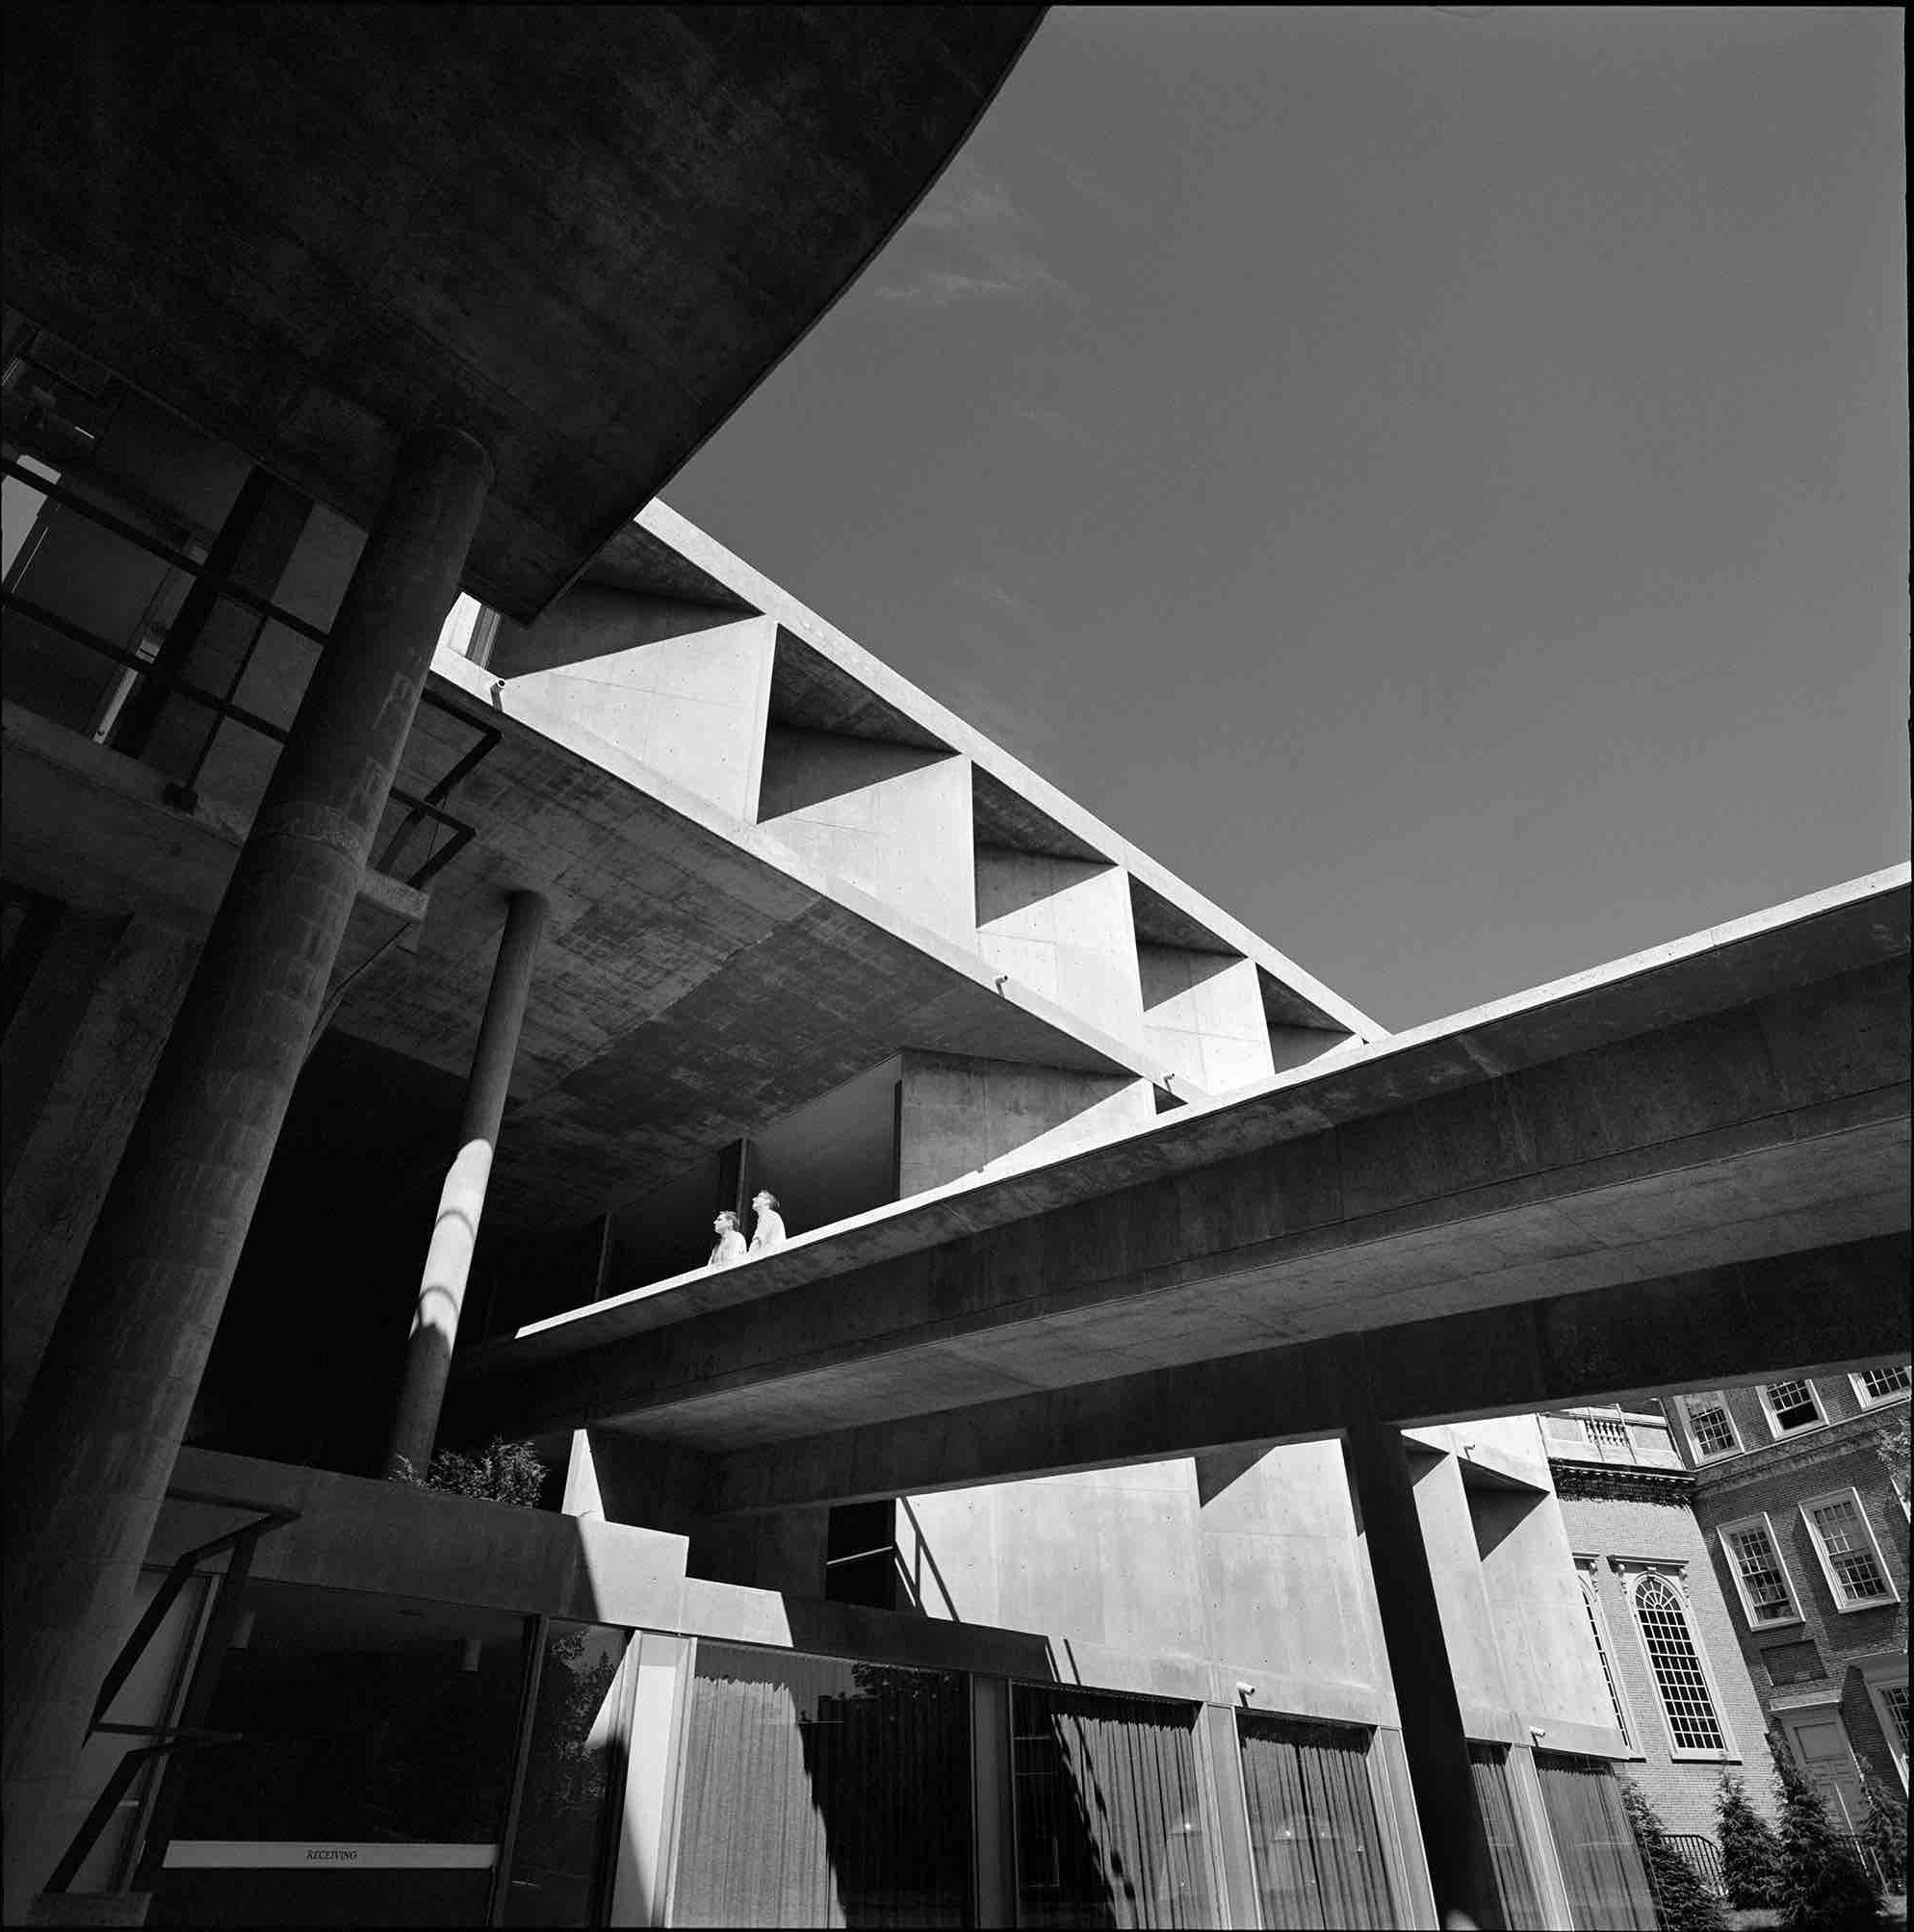 Le Corbusier, Carpenter Center for the Visual Arts at Harvard University (Cambridge, MA) 1963